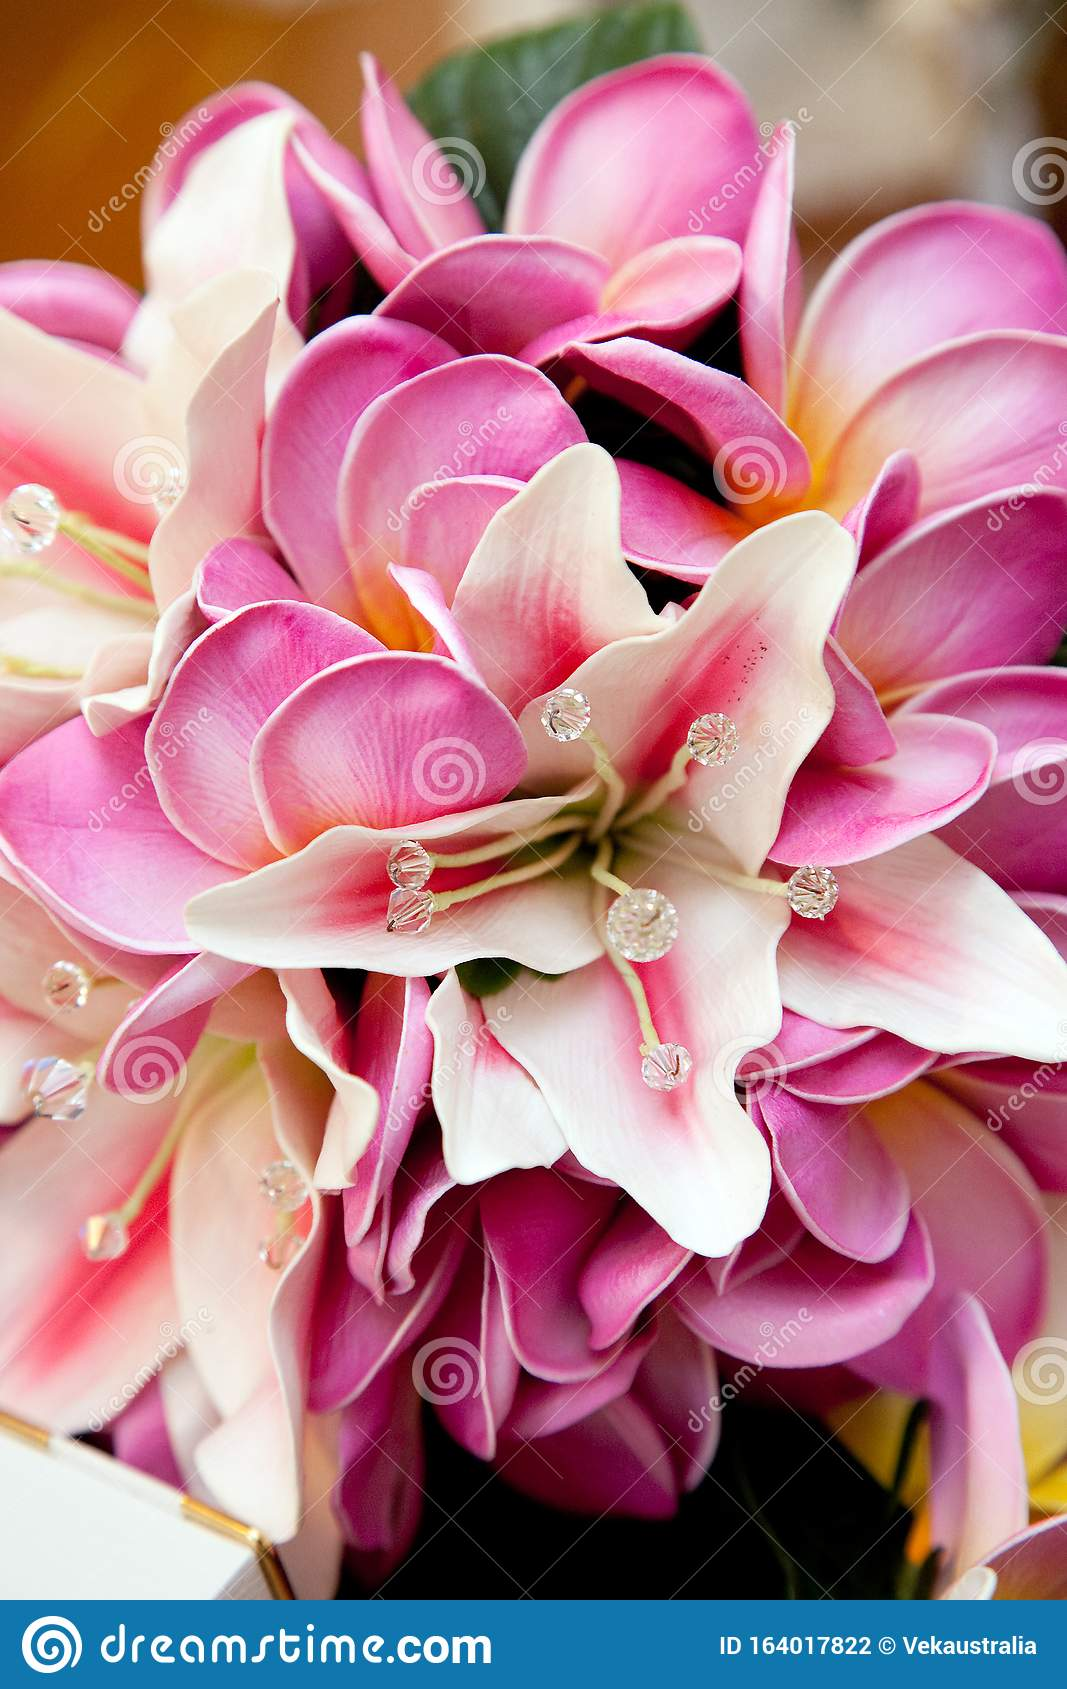 Pink Lily Flower Wedding Bouquet Stock Photo Image Of Lily Wedding 164017822